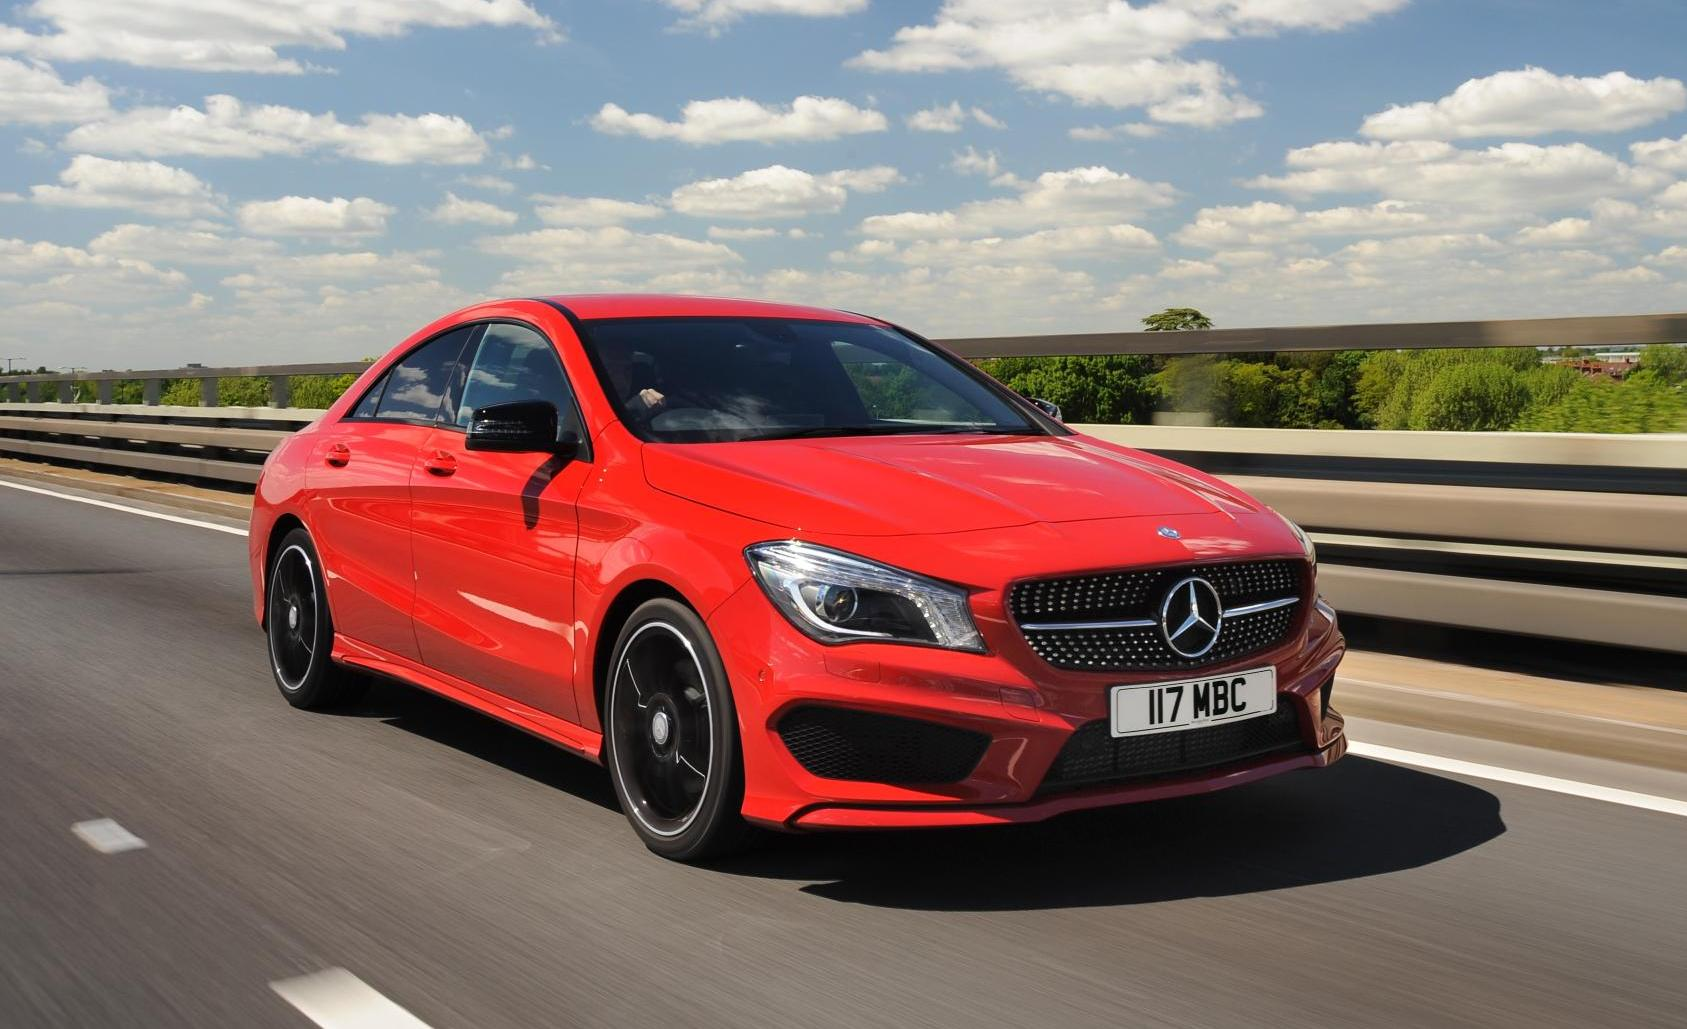 Mercedes benz cla class india launch within 6 months for What country makes mercedes benz cars